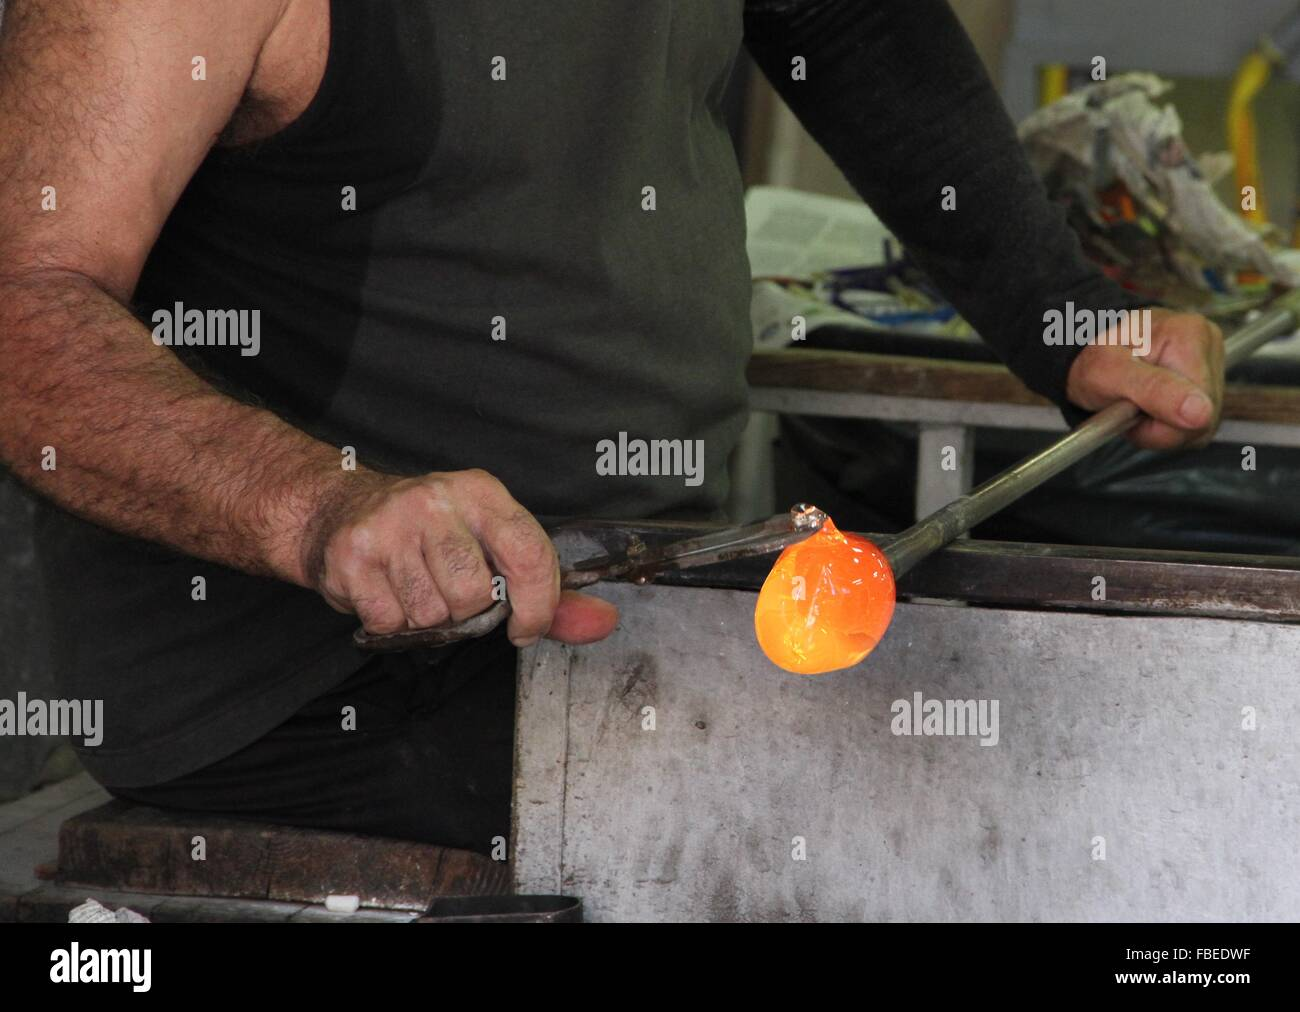 Manual Worker Holding Glass Blower In Glass Factory - Stock Image